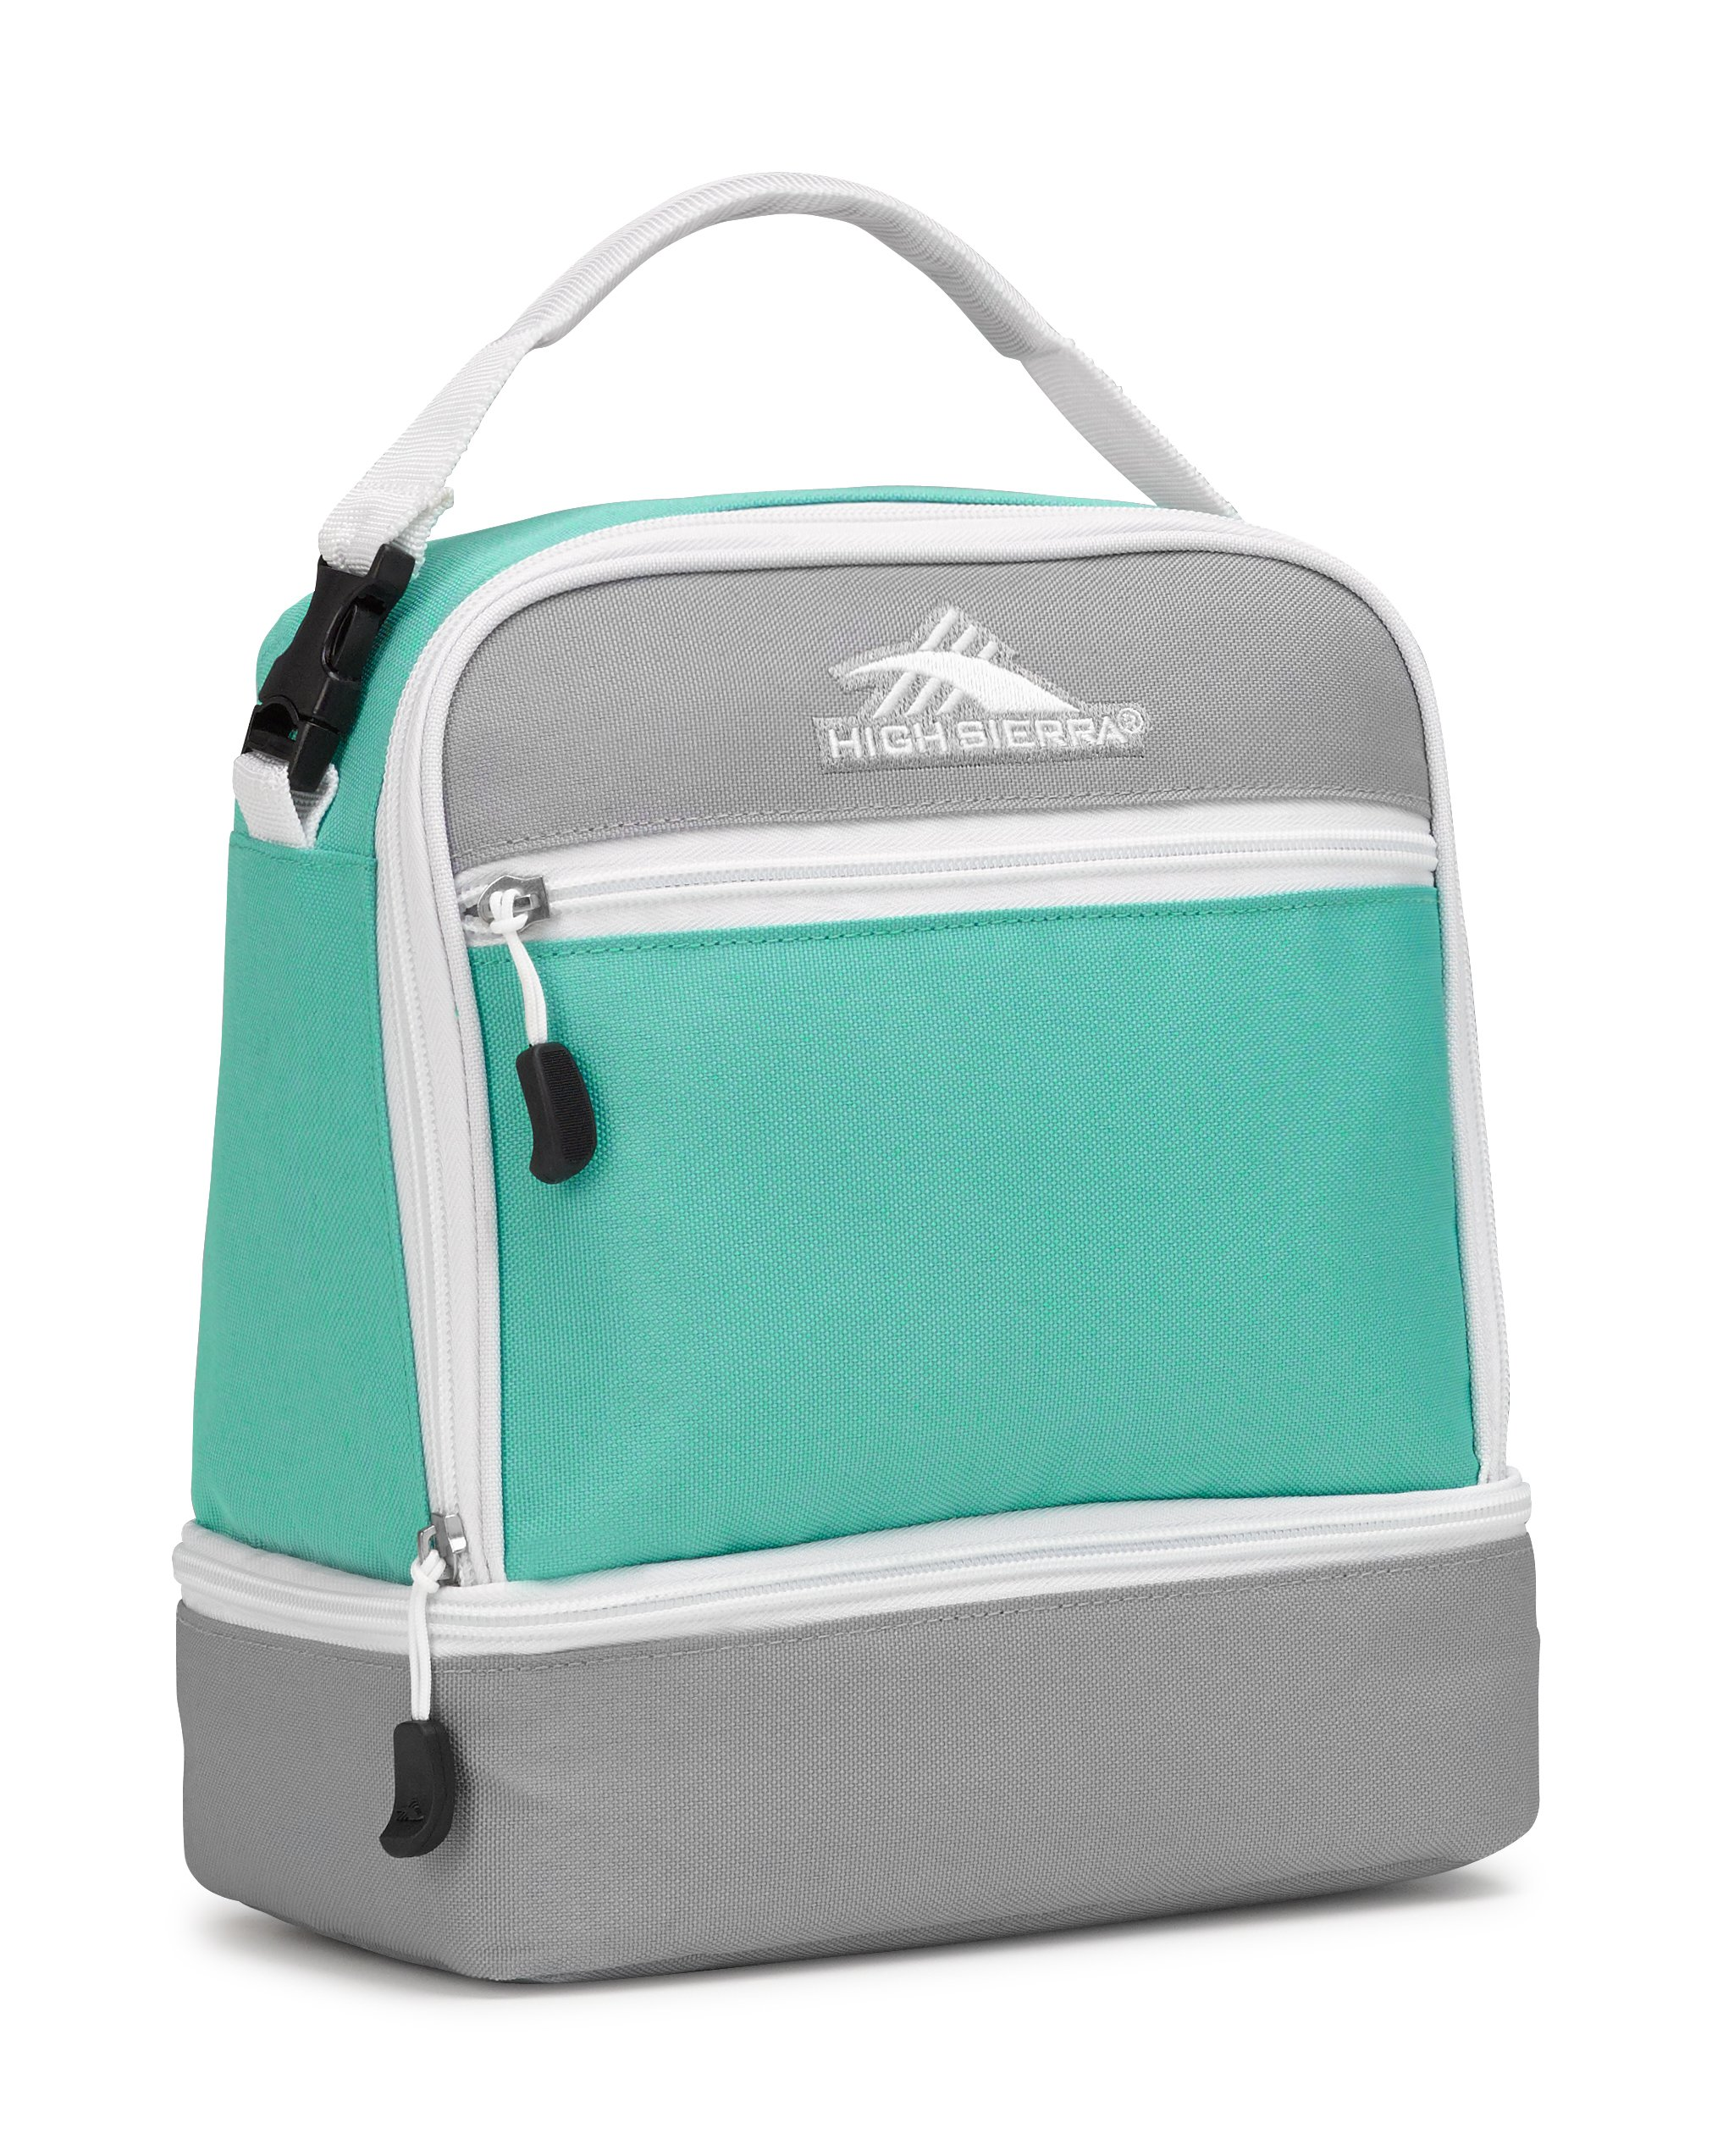 High Sierra Stacked Compartment Lunch Bag, Aquamarine/Ash/White